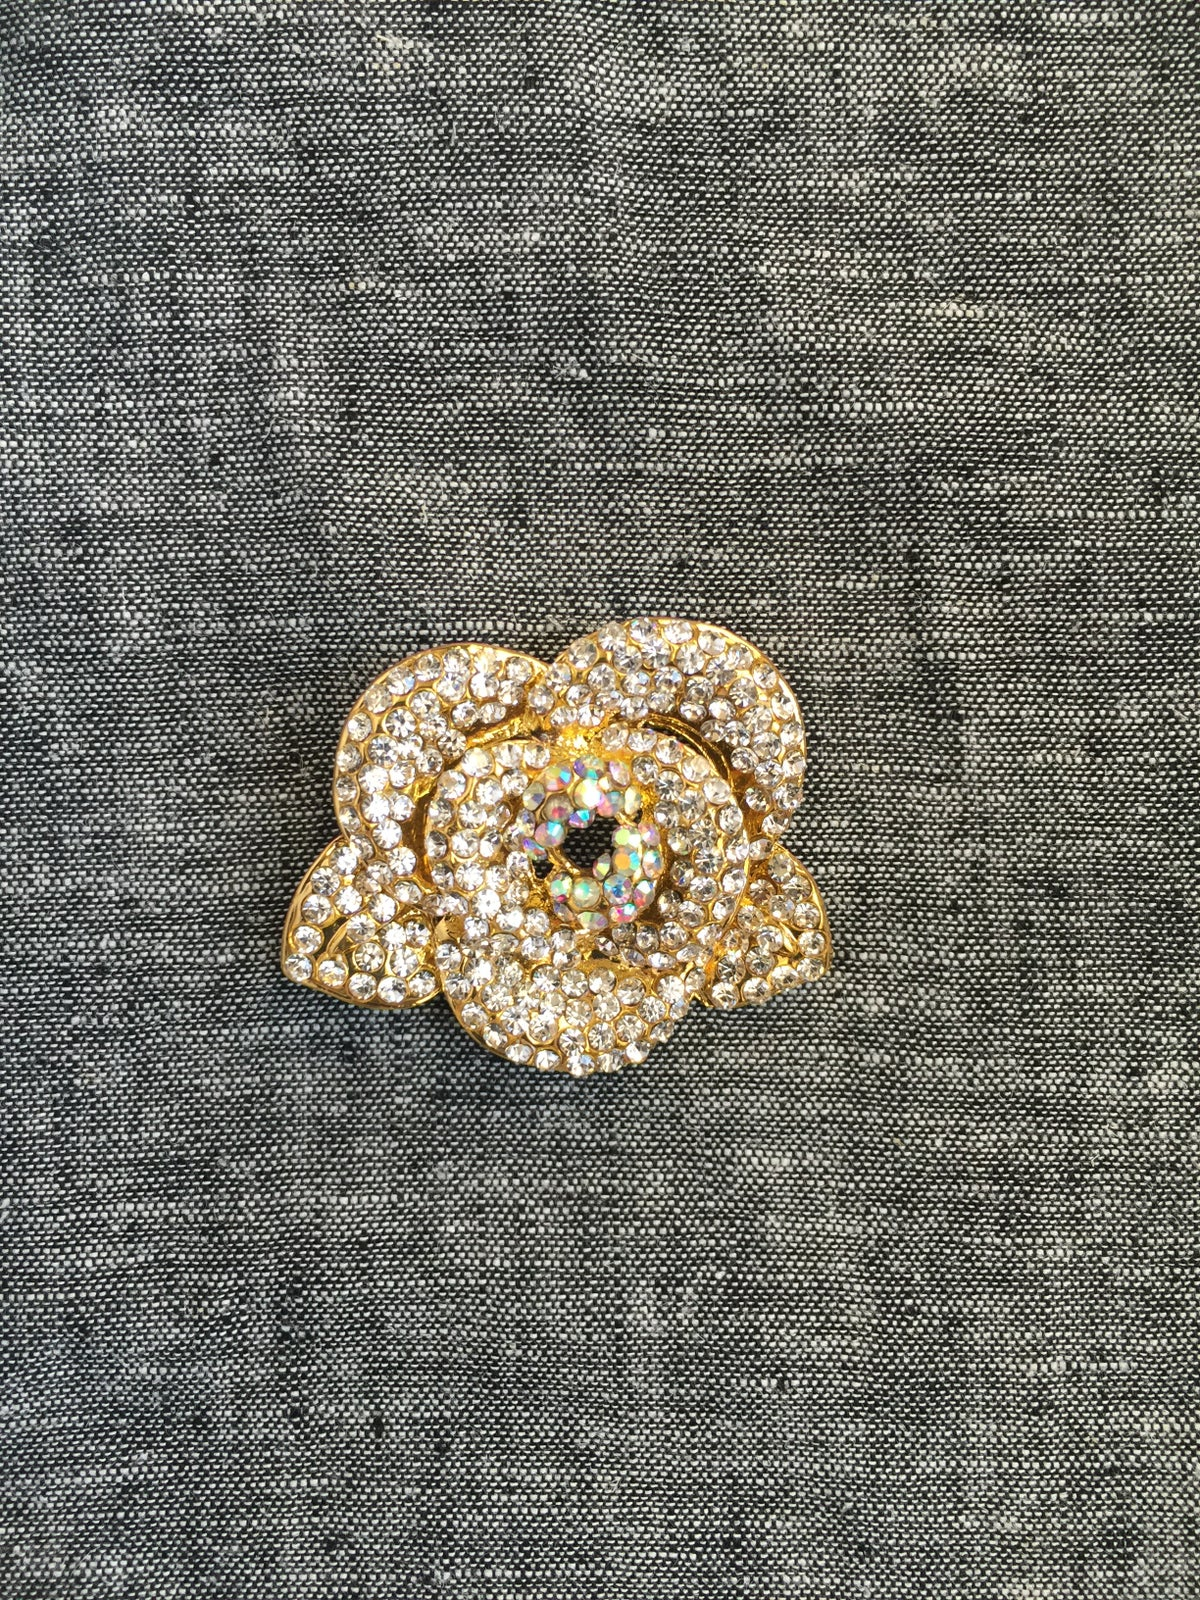 Image of Bright Flower Brooch (Crystal)